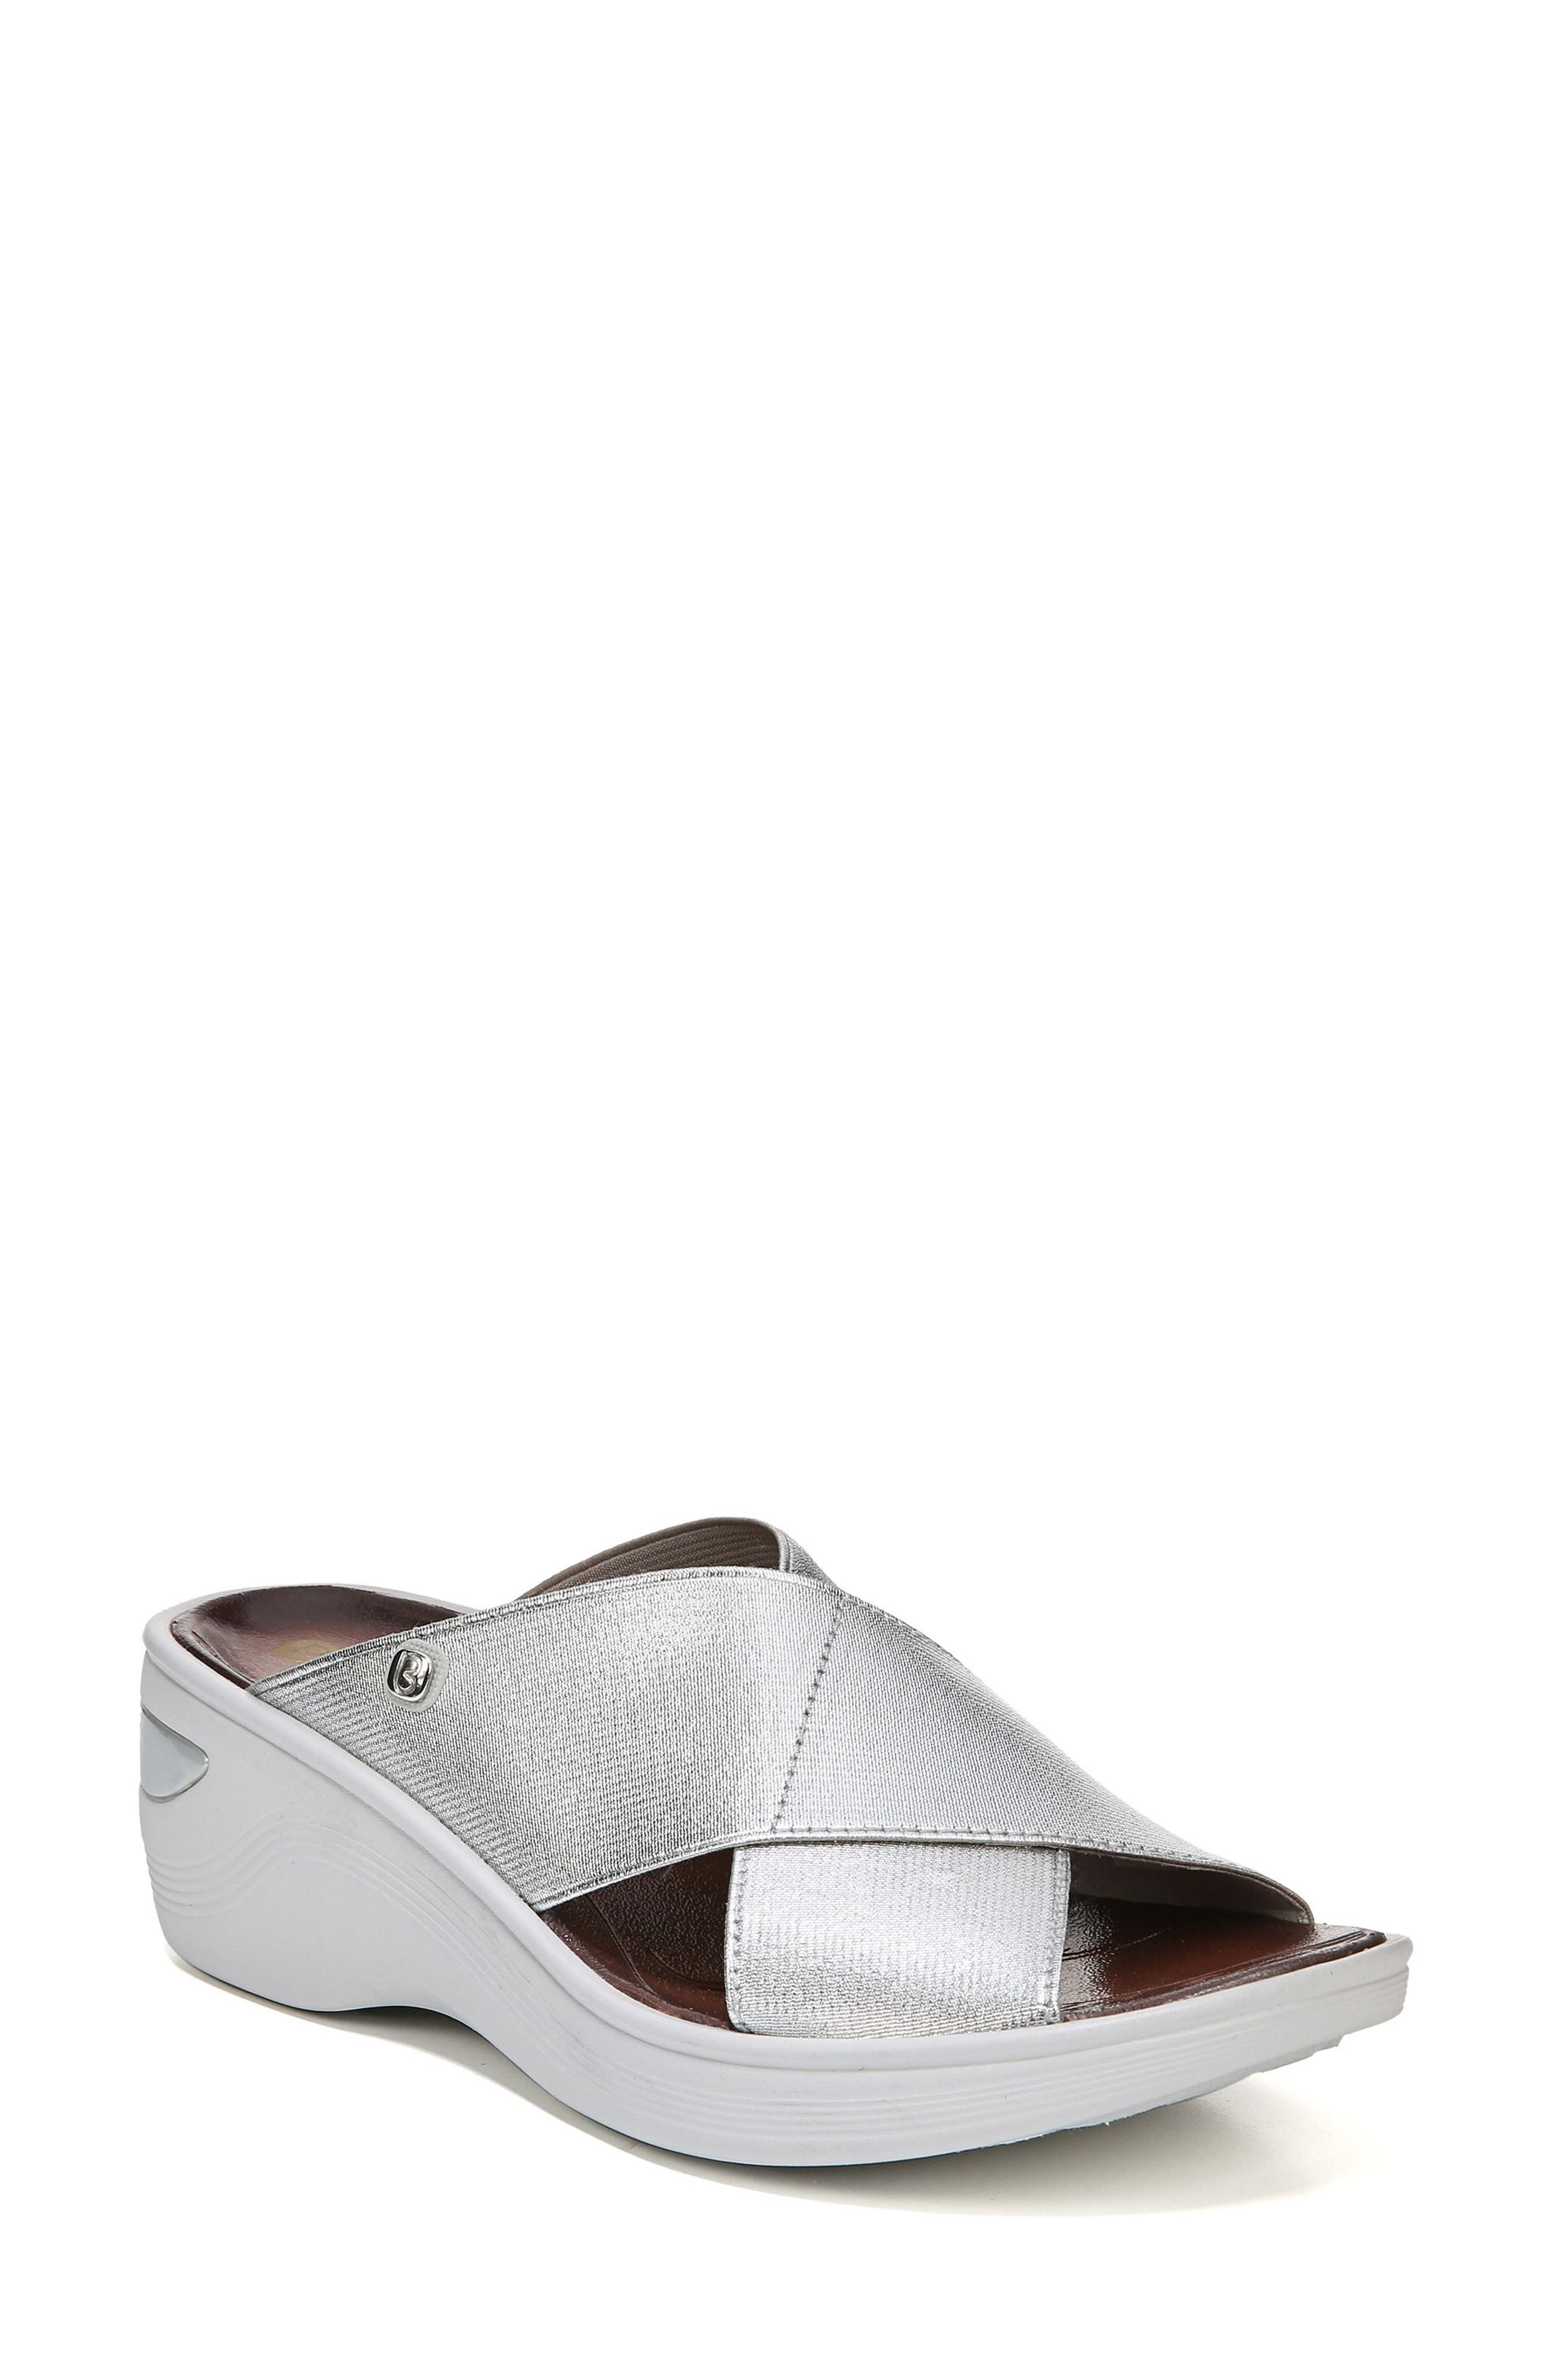 'Desire' Wedge Sandal,                             Main thumbnail 1, color,                             SILVER METALLIC